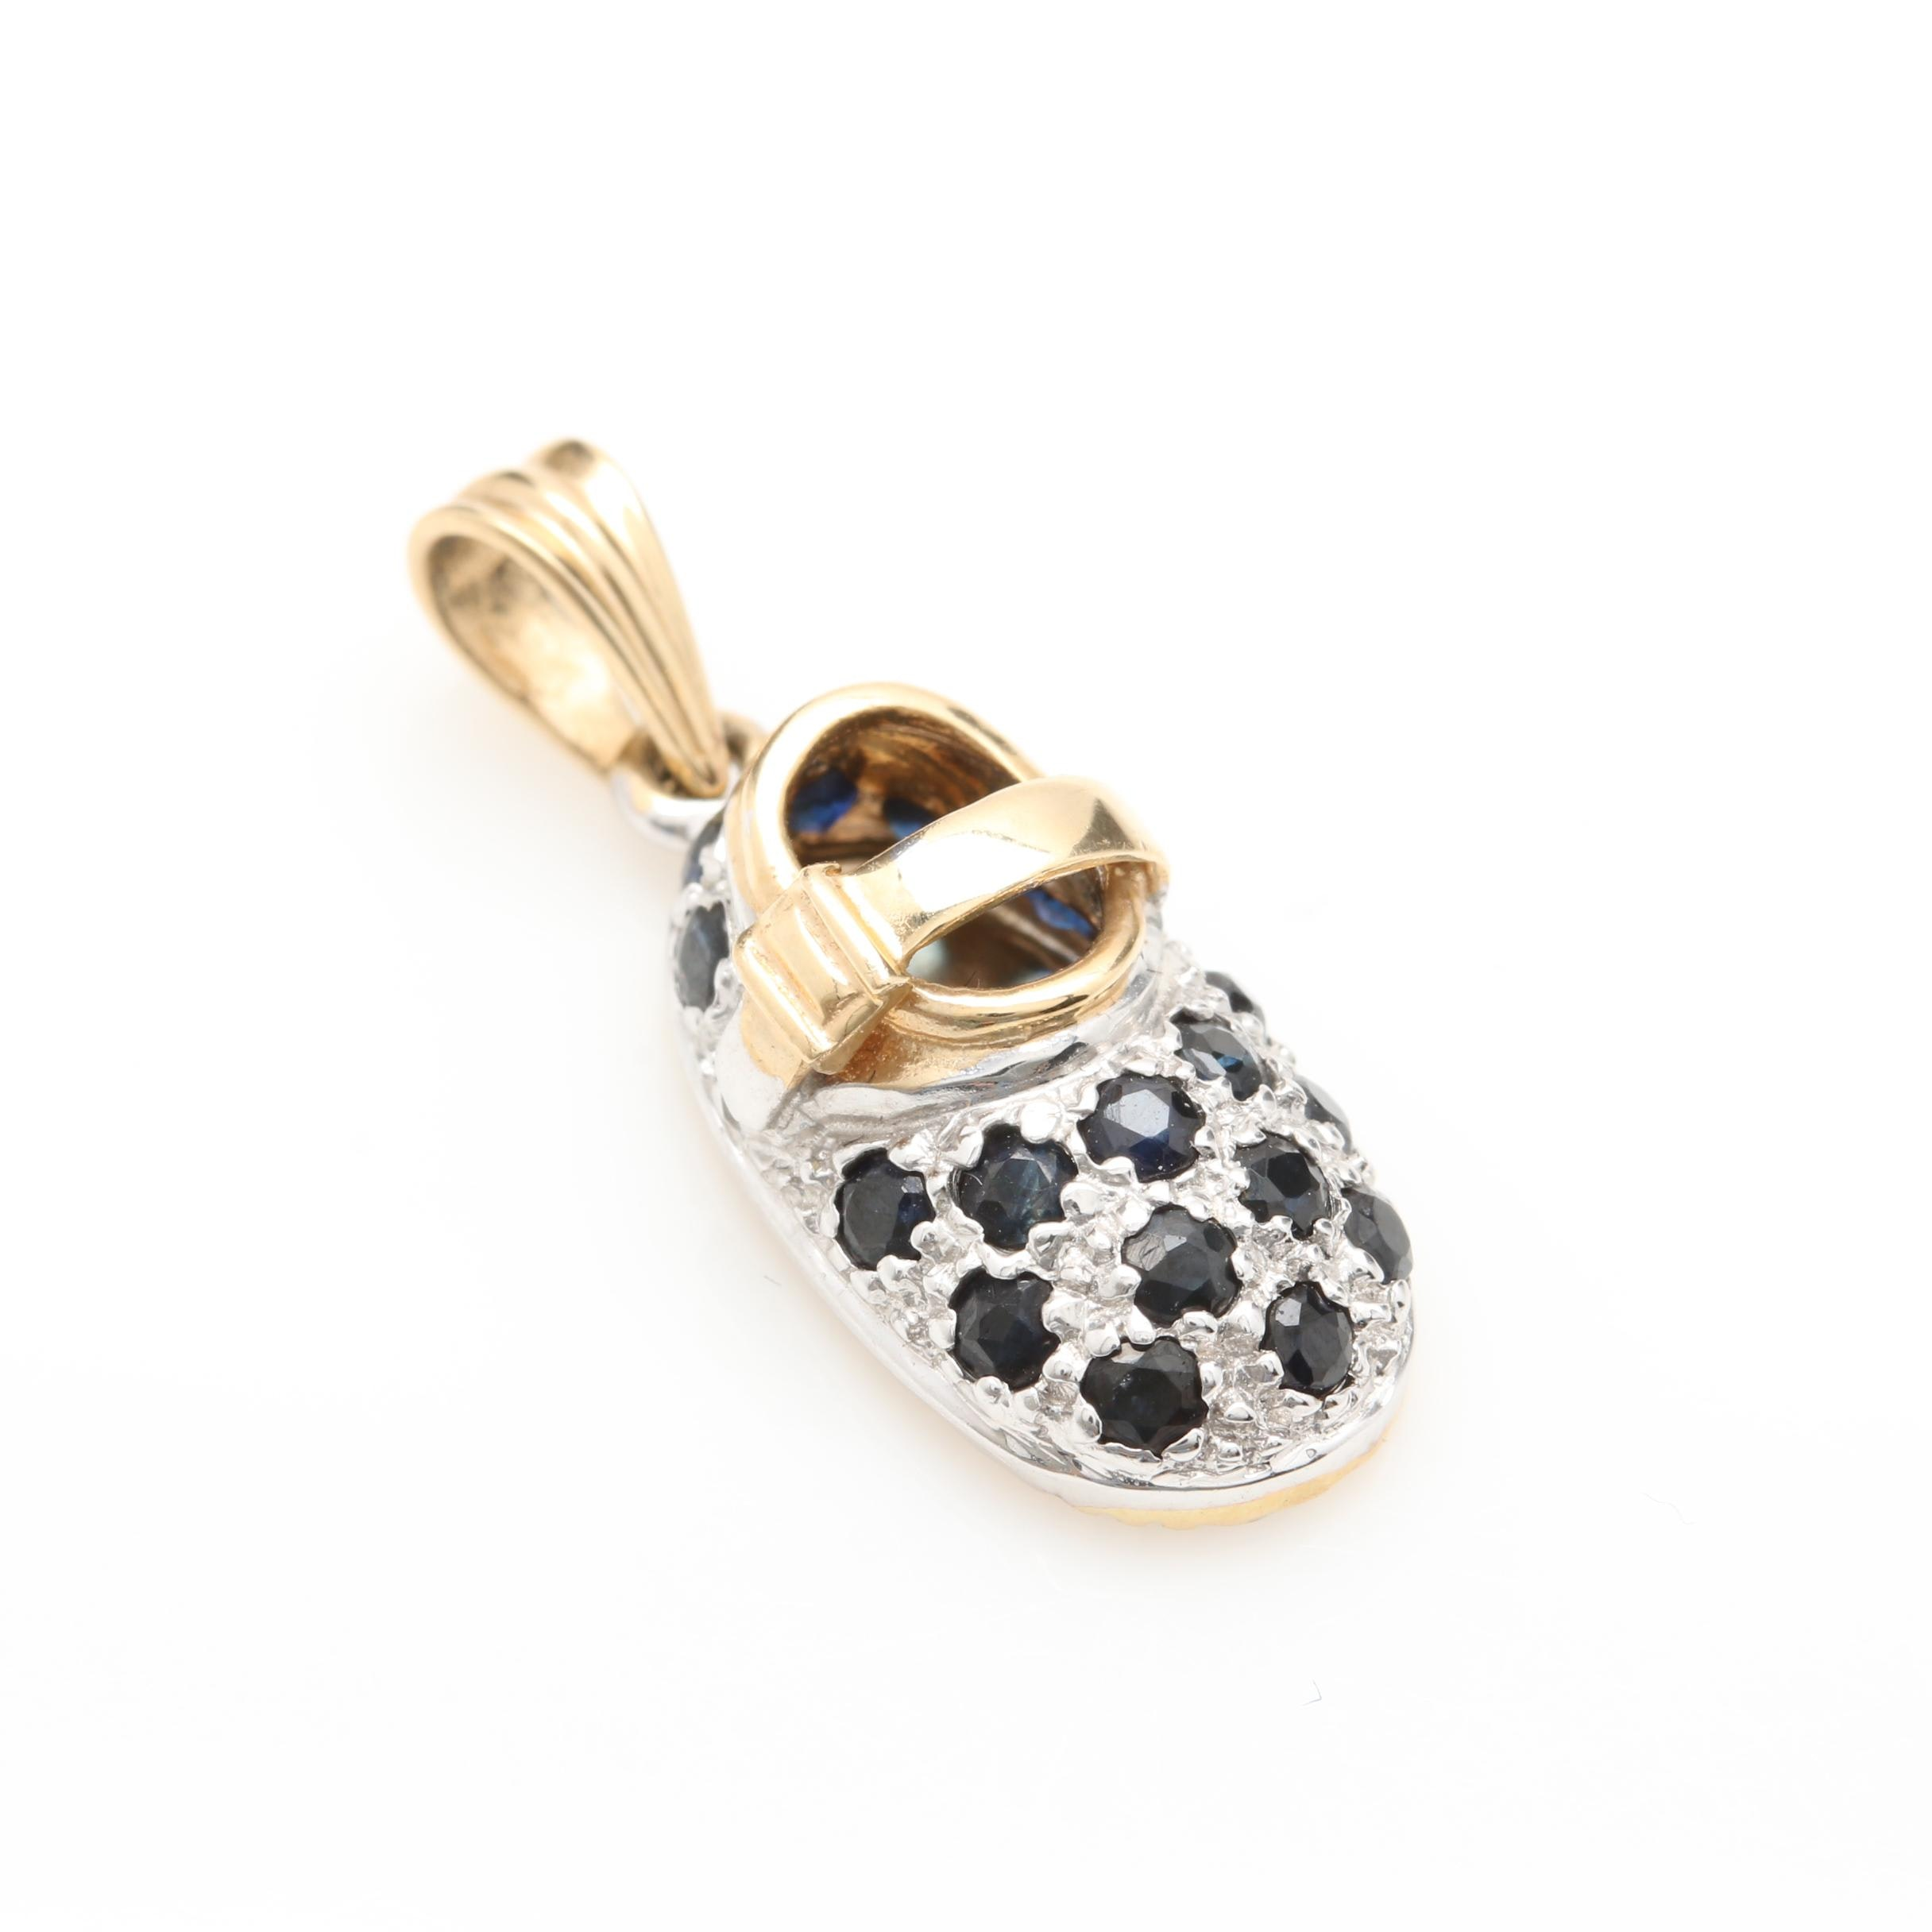 14K Yellow and White Gold Blue Sapphire Shoe Charm Pendant